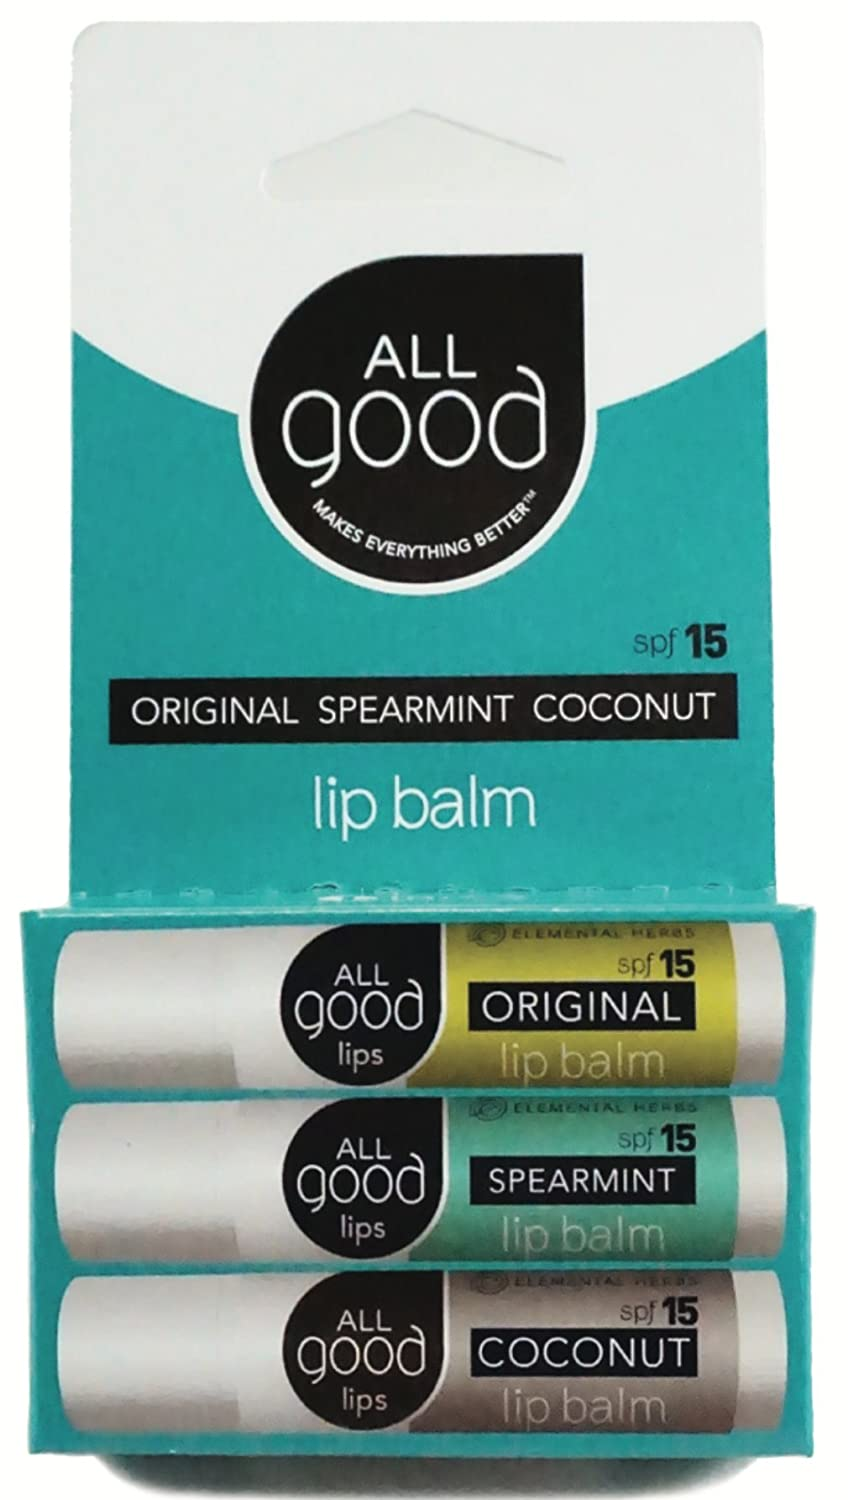 All Good - Natural Lip Balm oureczemastory.com